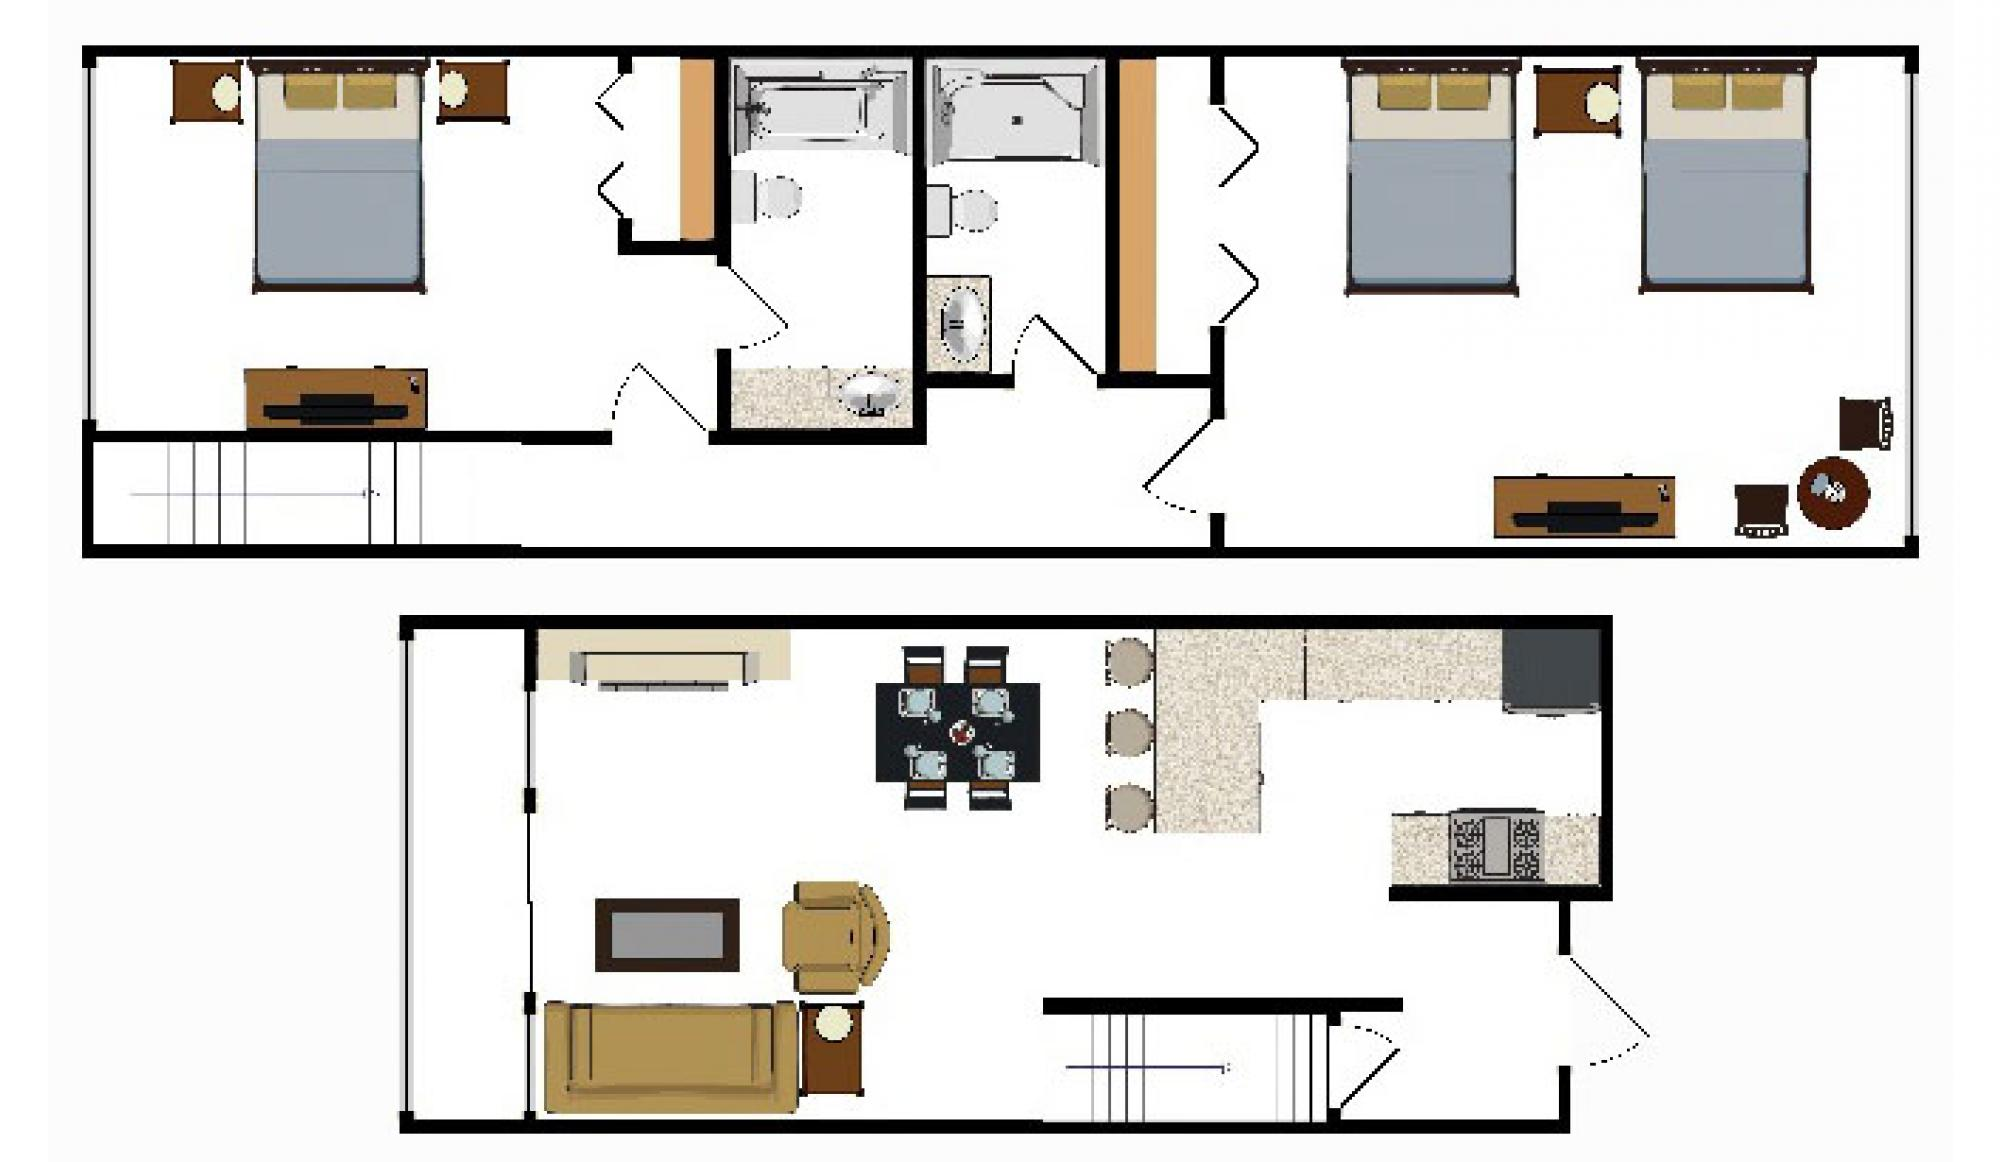 2 Bedroom Suite Floor Plan at Beaver Run Resort in Breckenridge